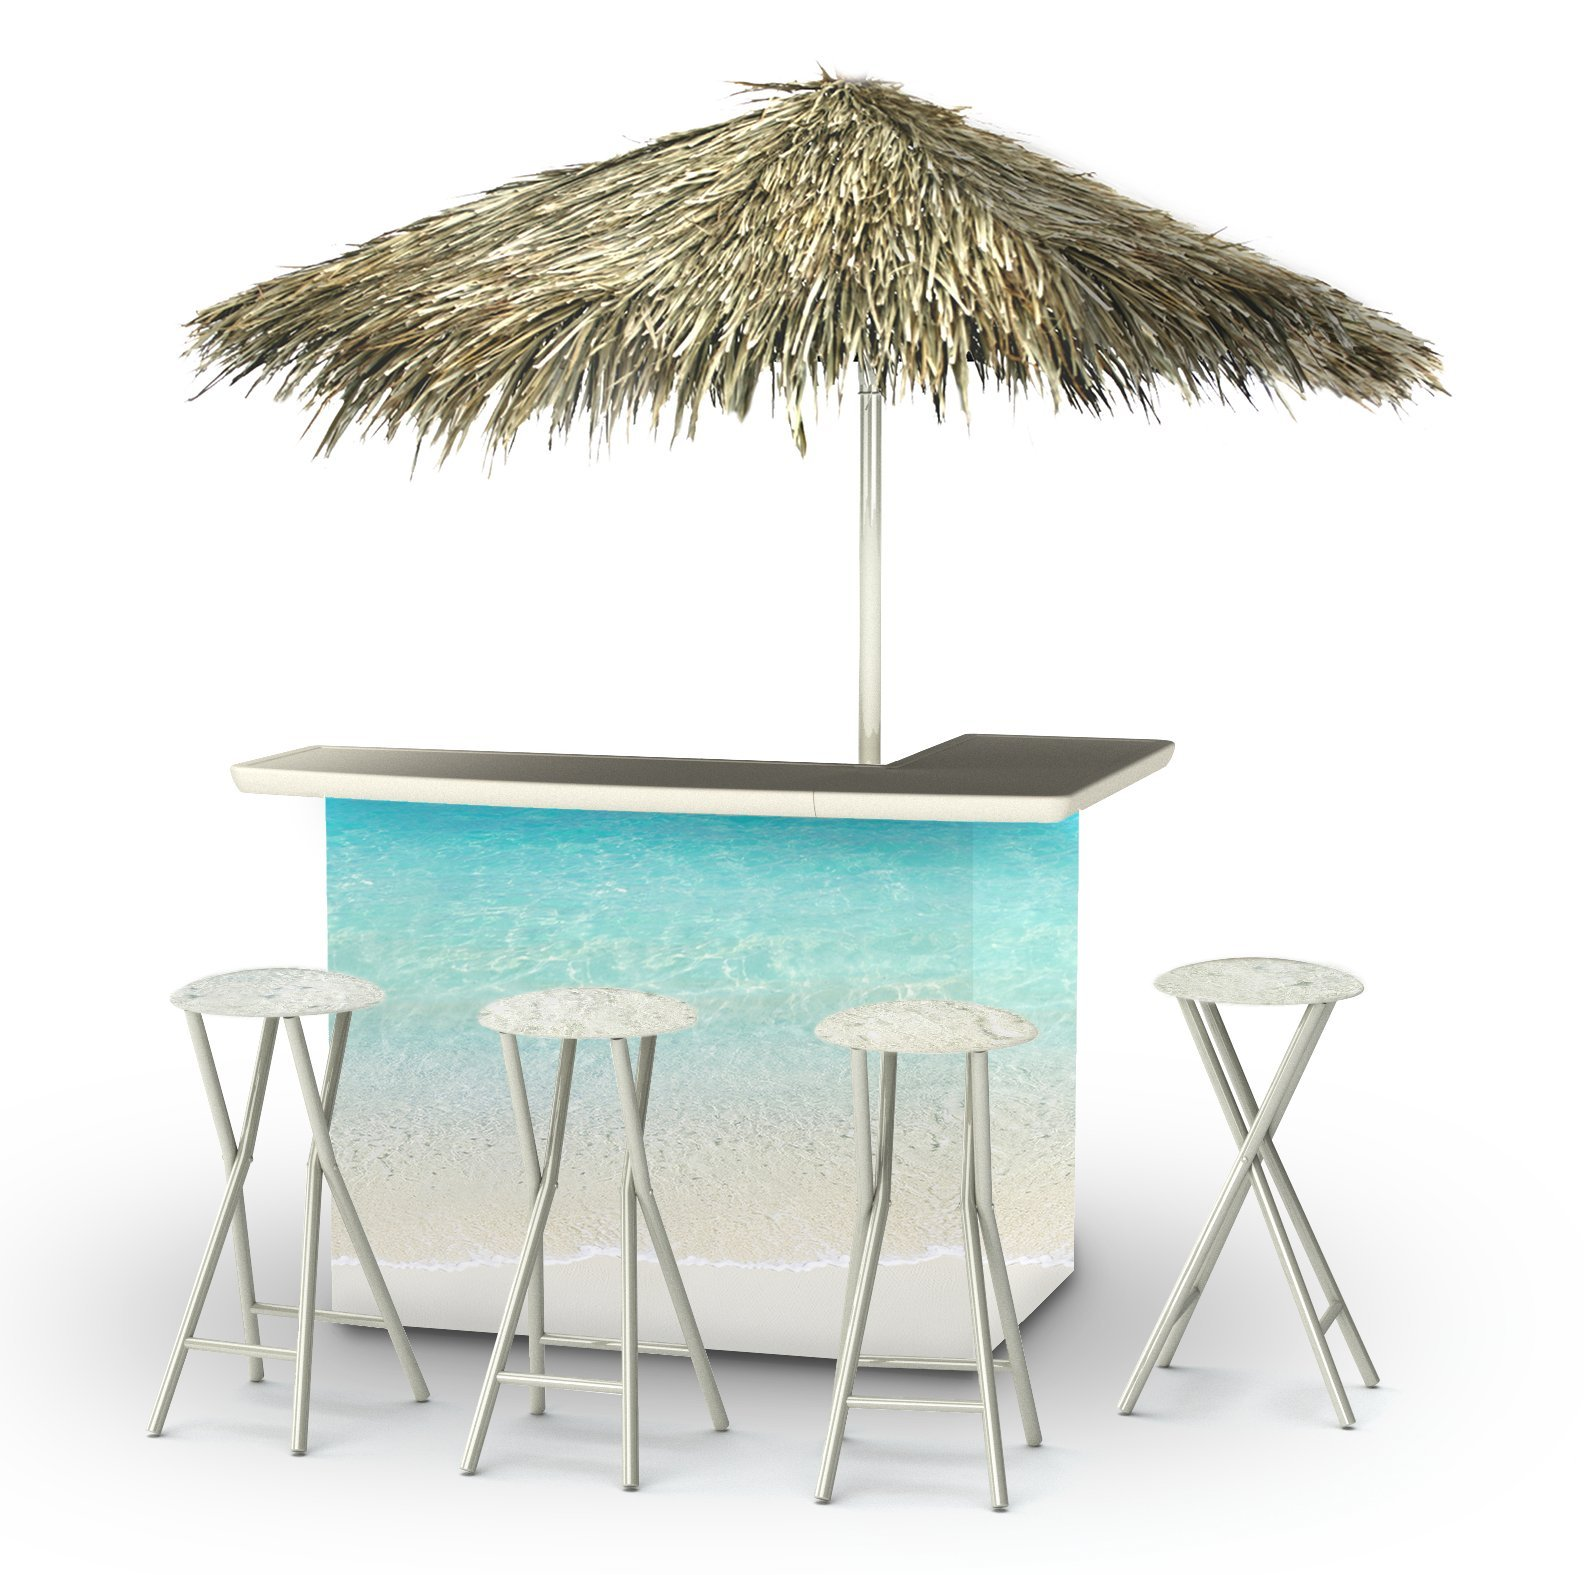 Best of Times 2003W2305P Sand BAR-PALAPA, One Size Blue